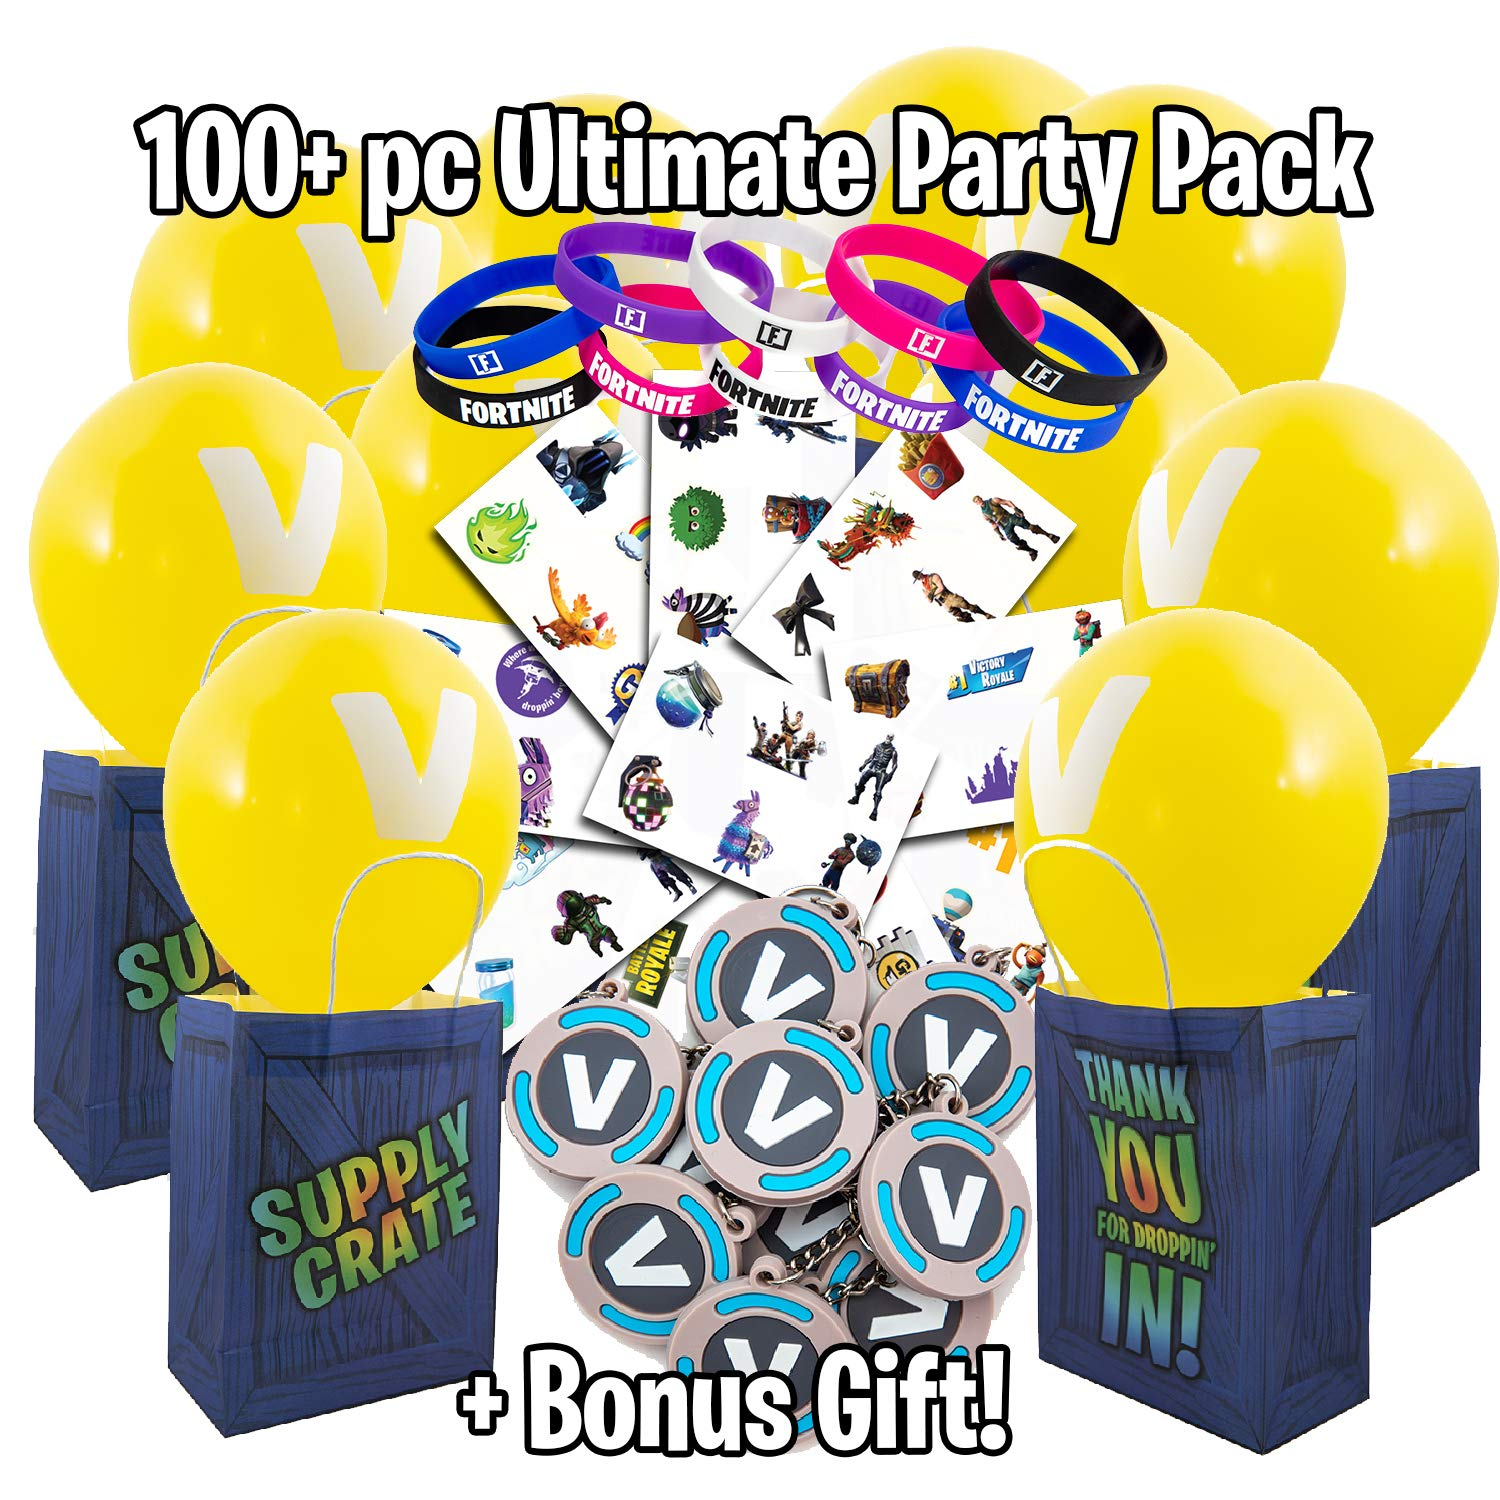 video game party supplies battle royale themed party favor set includes supply drop bags tattoo sheets balloons silicone bands buck key chains - amazon prime fortnite party supplies